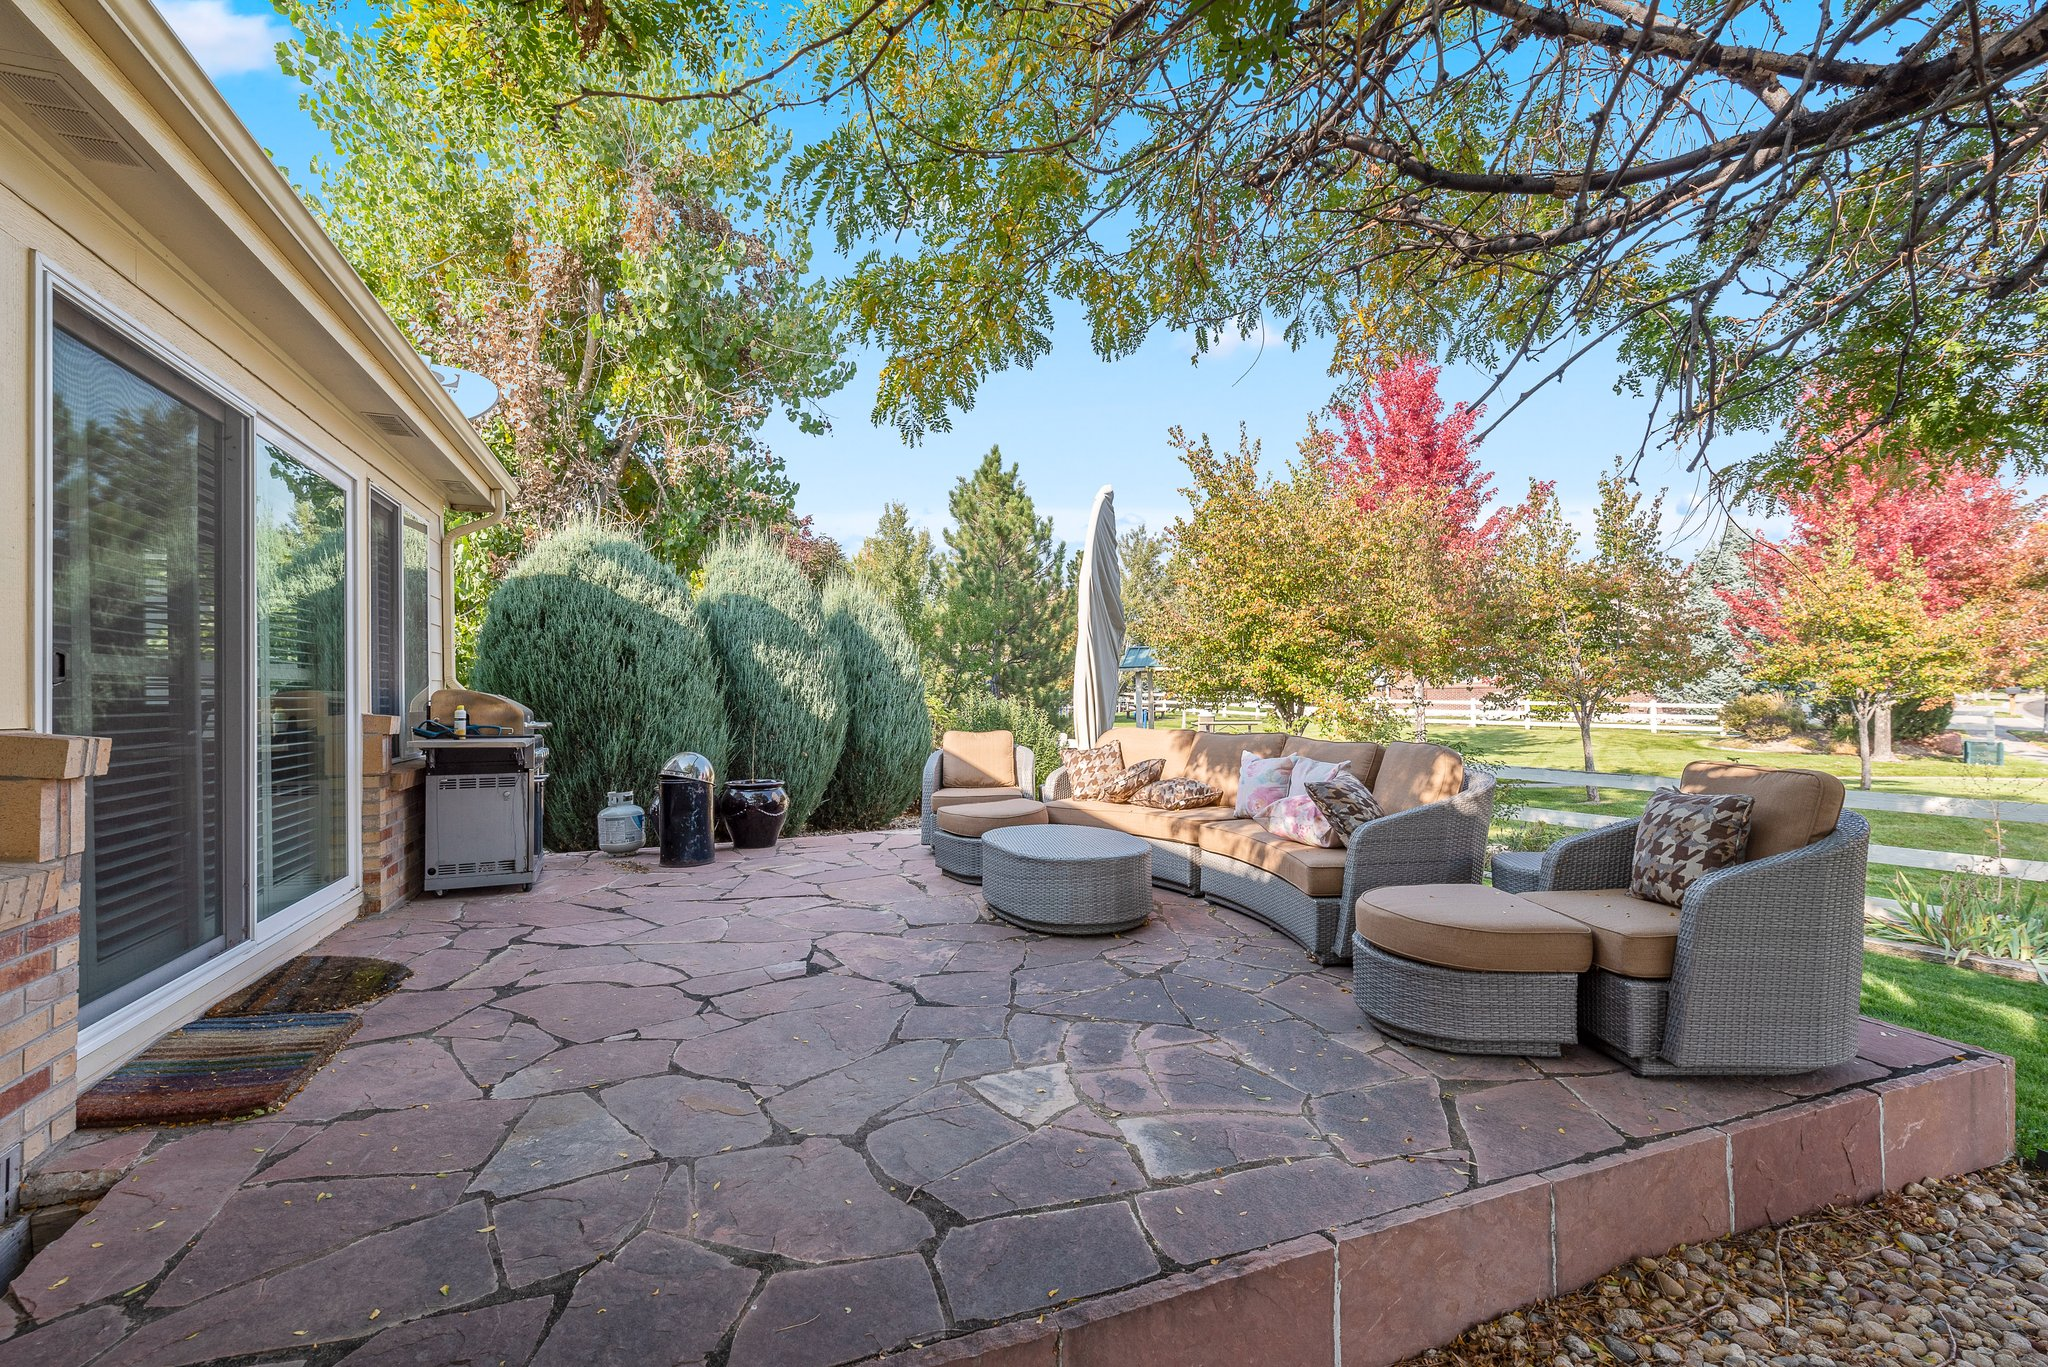 Flagstone patio with mature trees